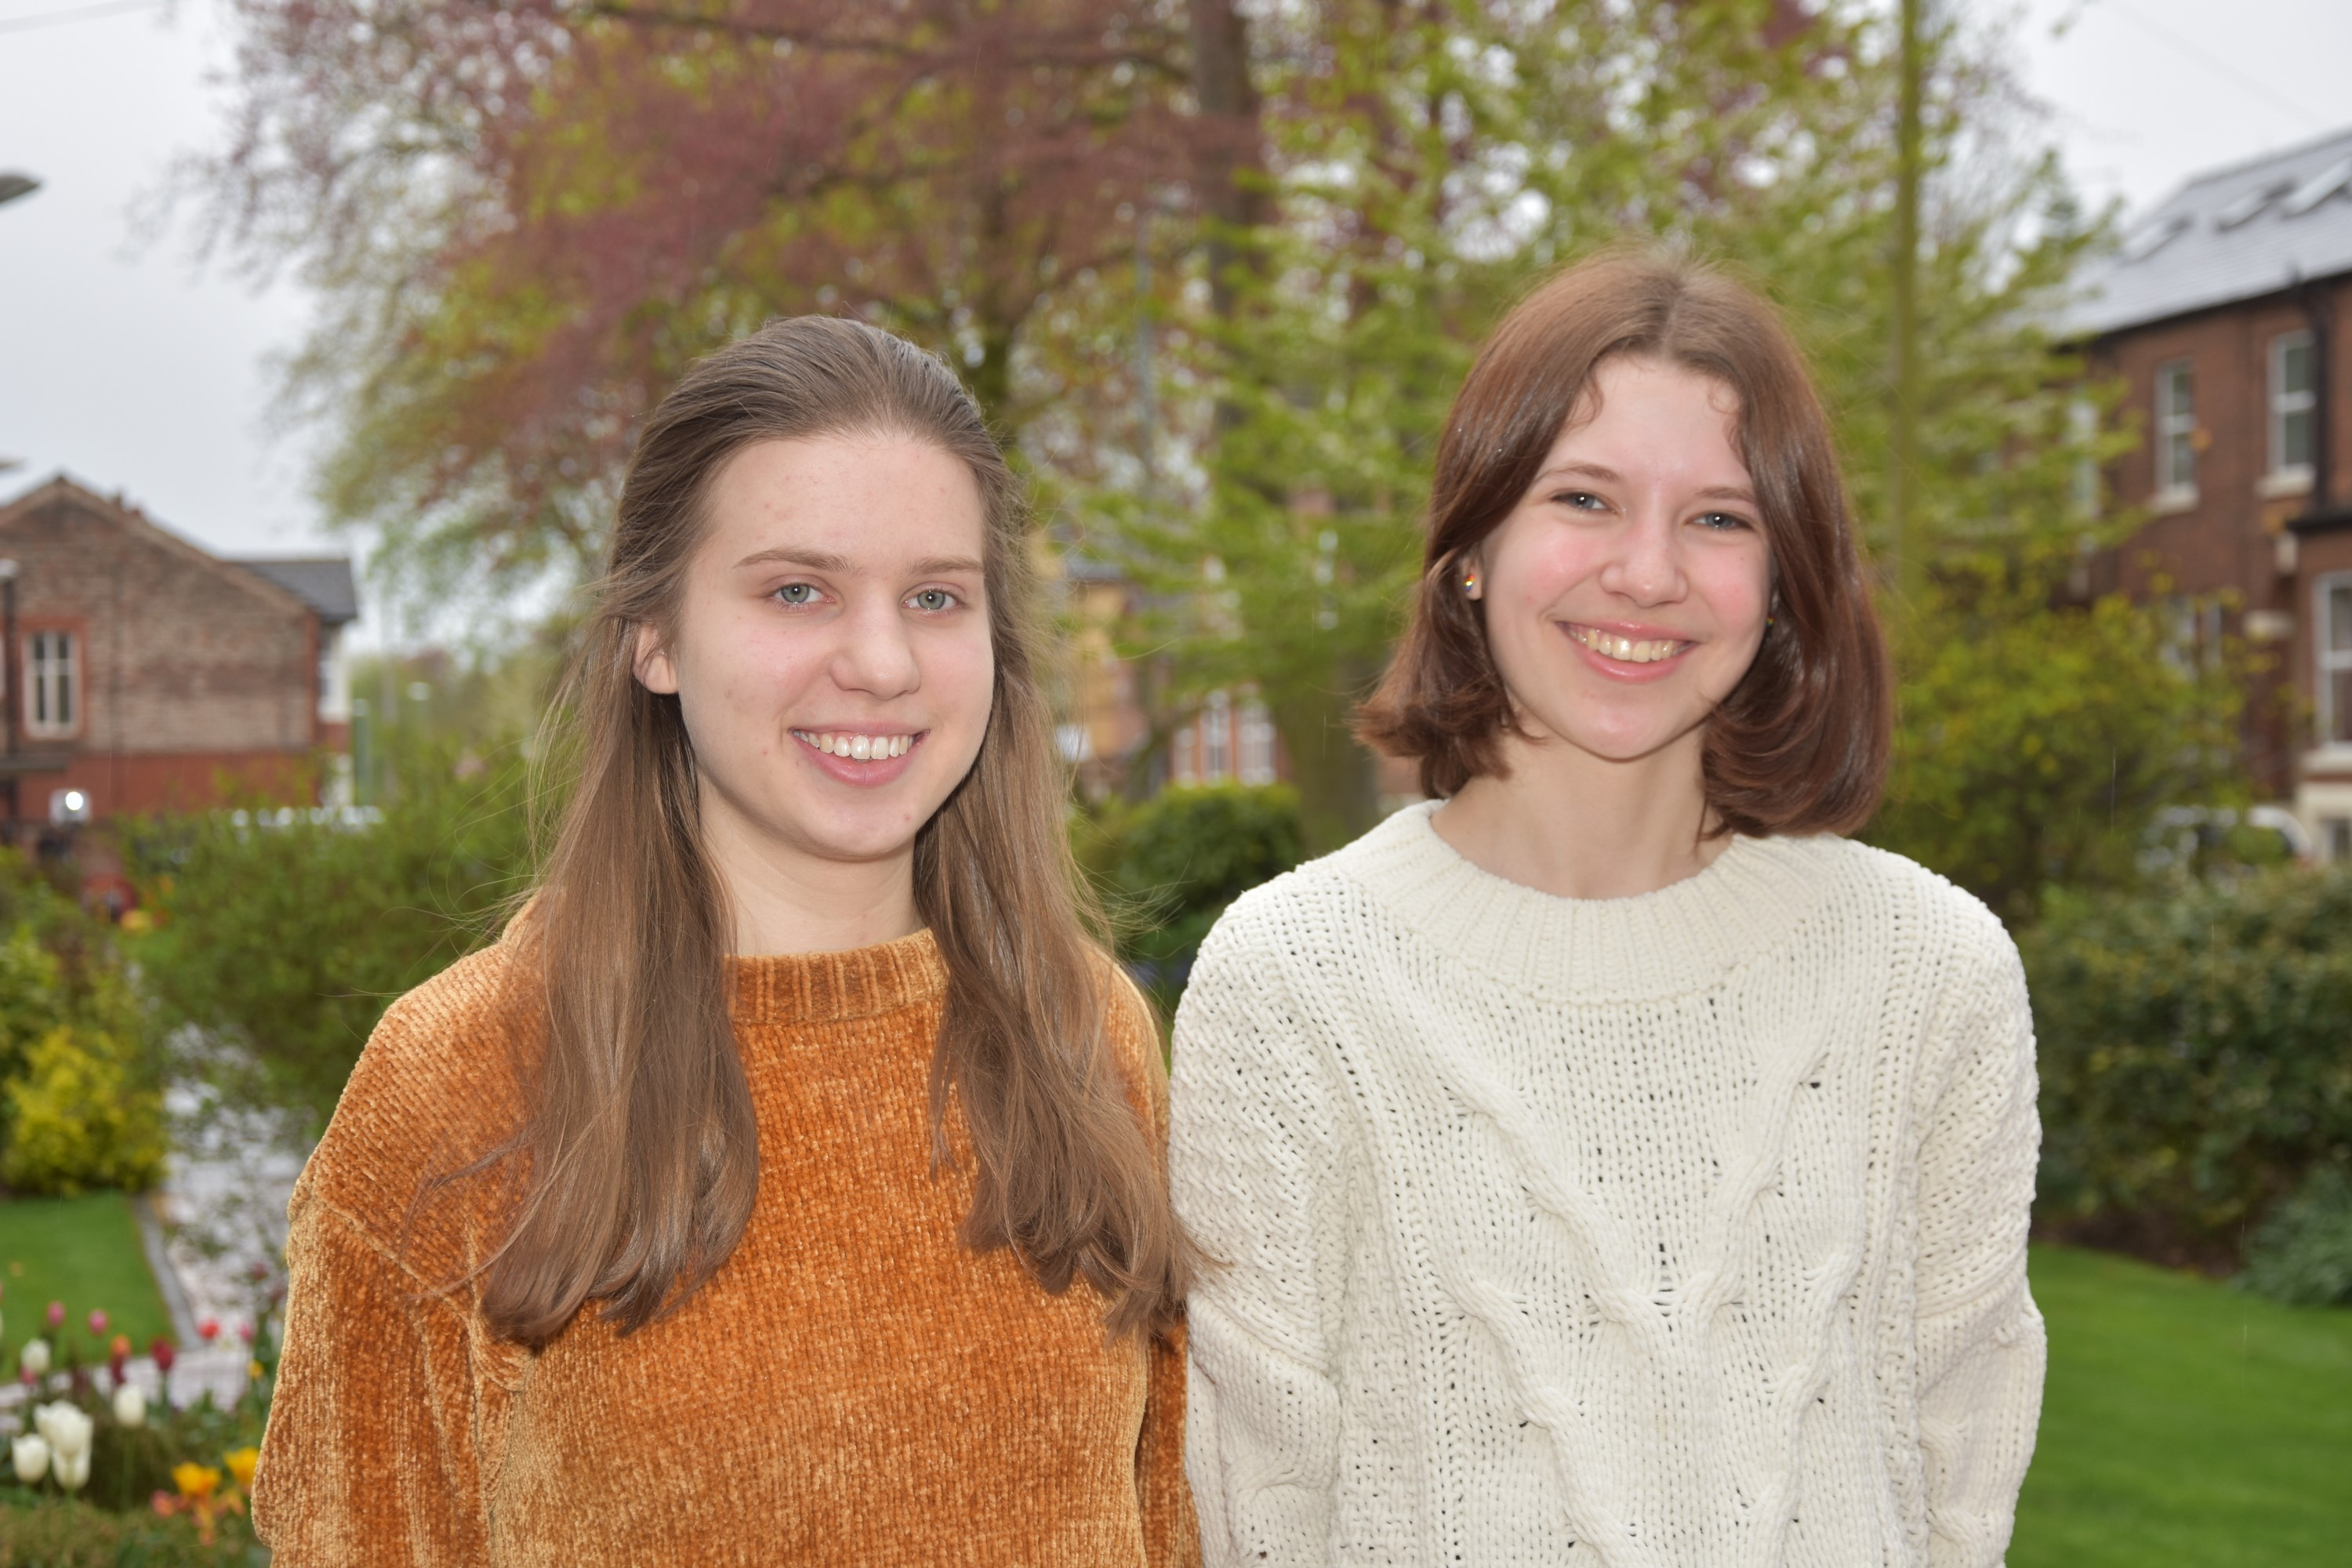 Two students from Withington are celebrating places in the international finals of science Olympiad competitions this summer - Sasha Geim (left) will represent the UK in Chemistry and Eleanor Edwards (right) has secured her place on the UK Linguistics Olympiad team.